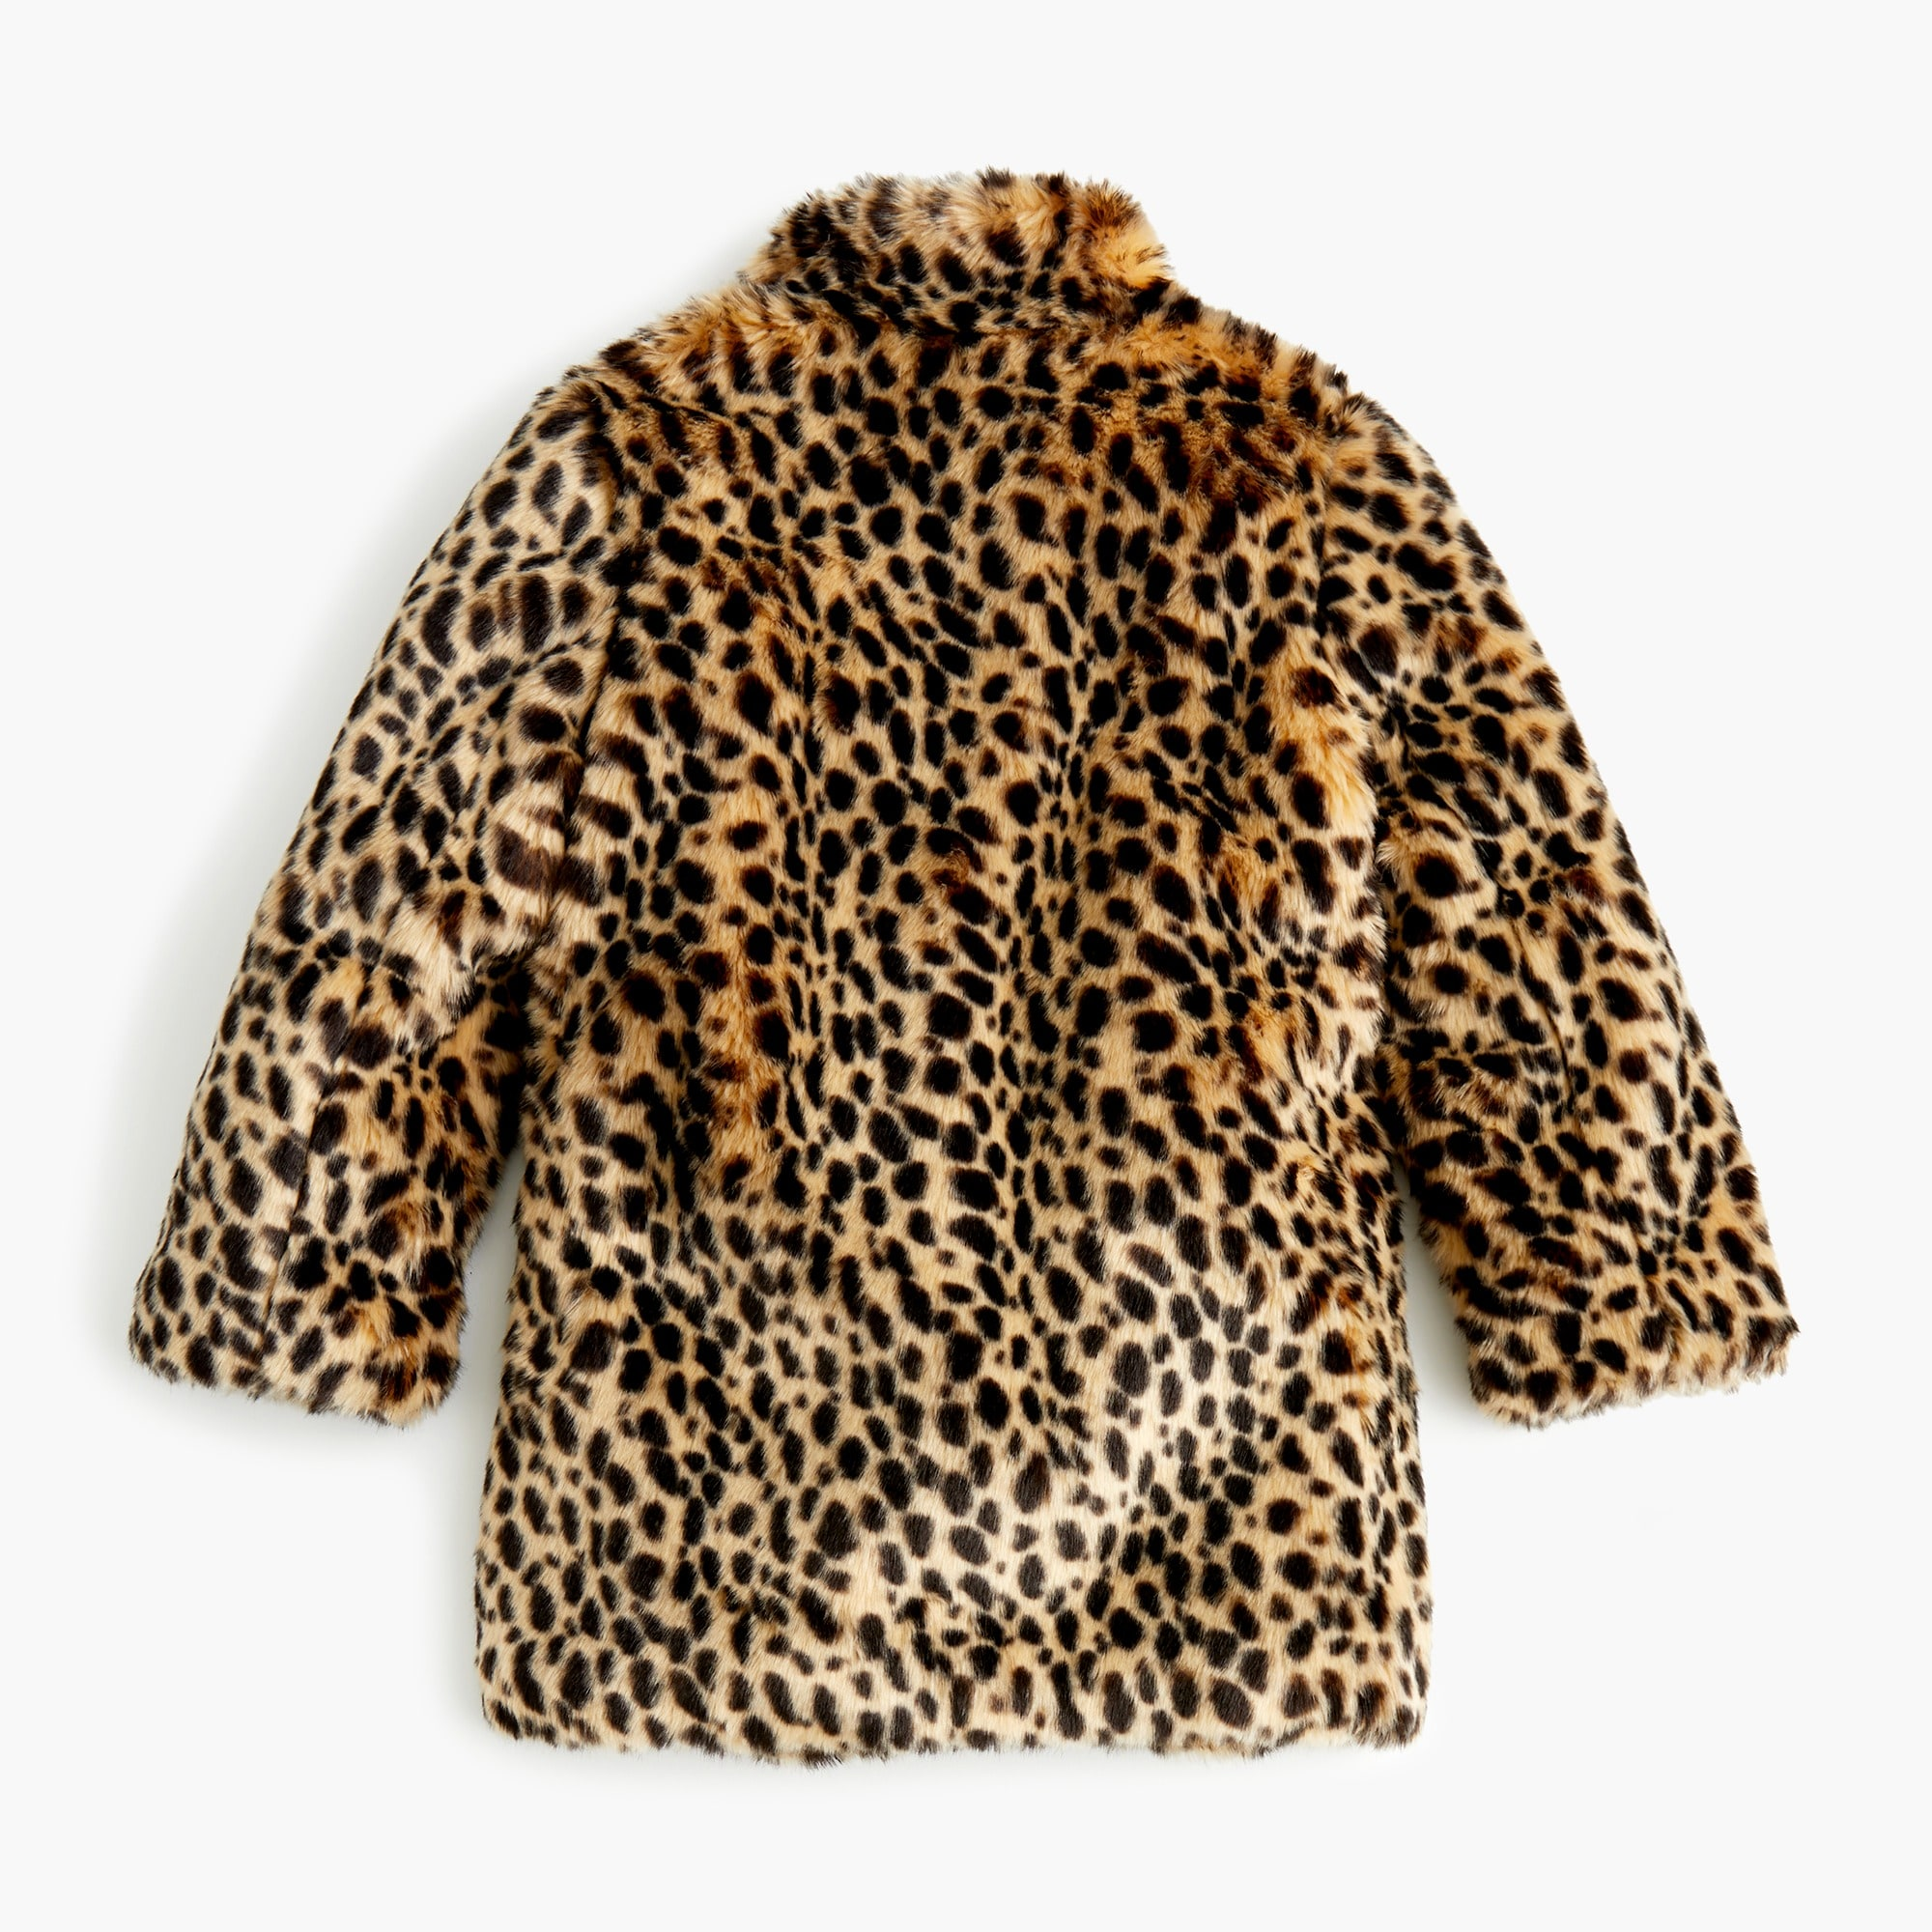 Image 1 for Girls' faux-fur coat in Savannah cat